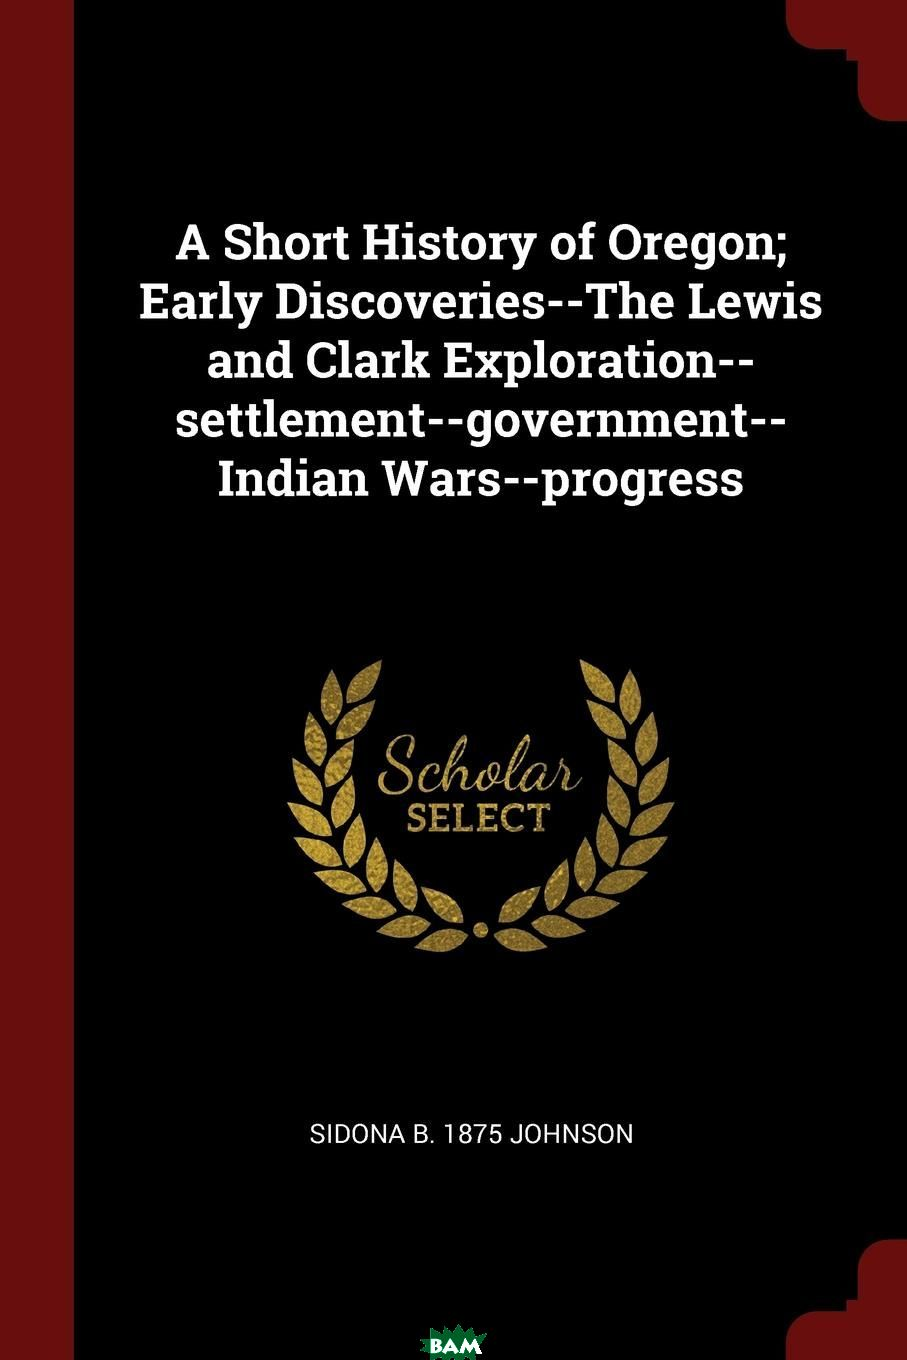 Купить A Short History of Oregon; Early Discoveries--The Lewis and Clark Exploration--settlement--government--Indian Wars--progress, Sidona b. 1875 Johnson, 9781296683191